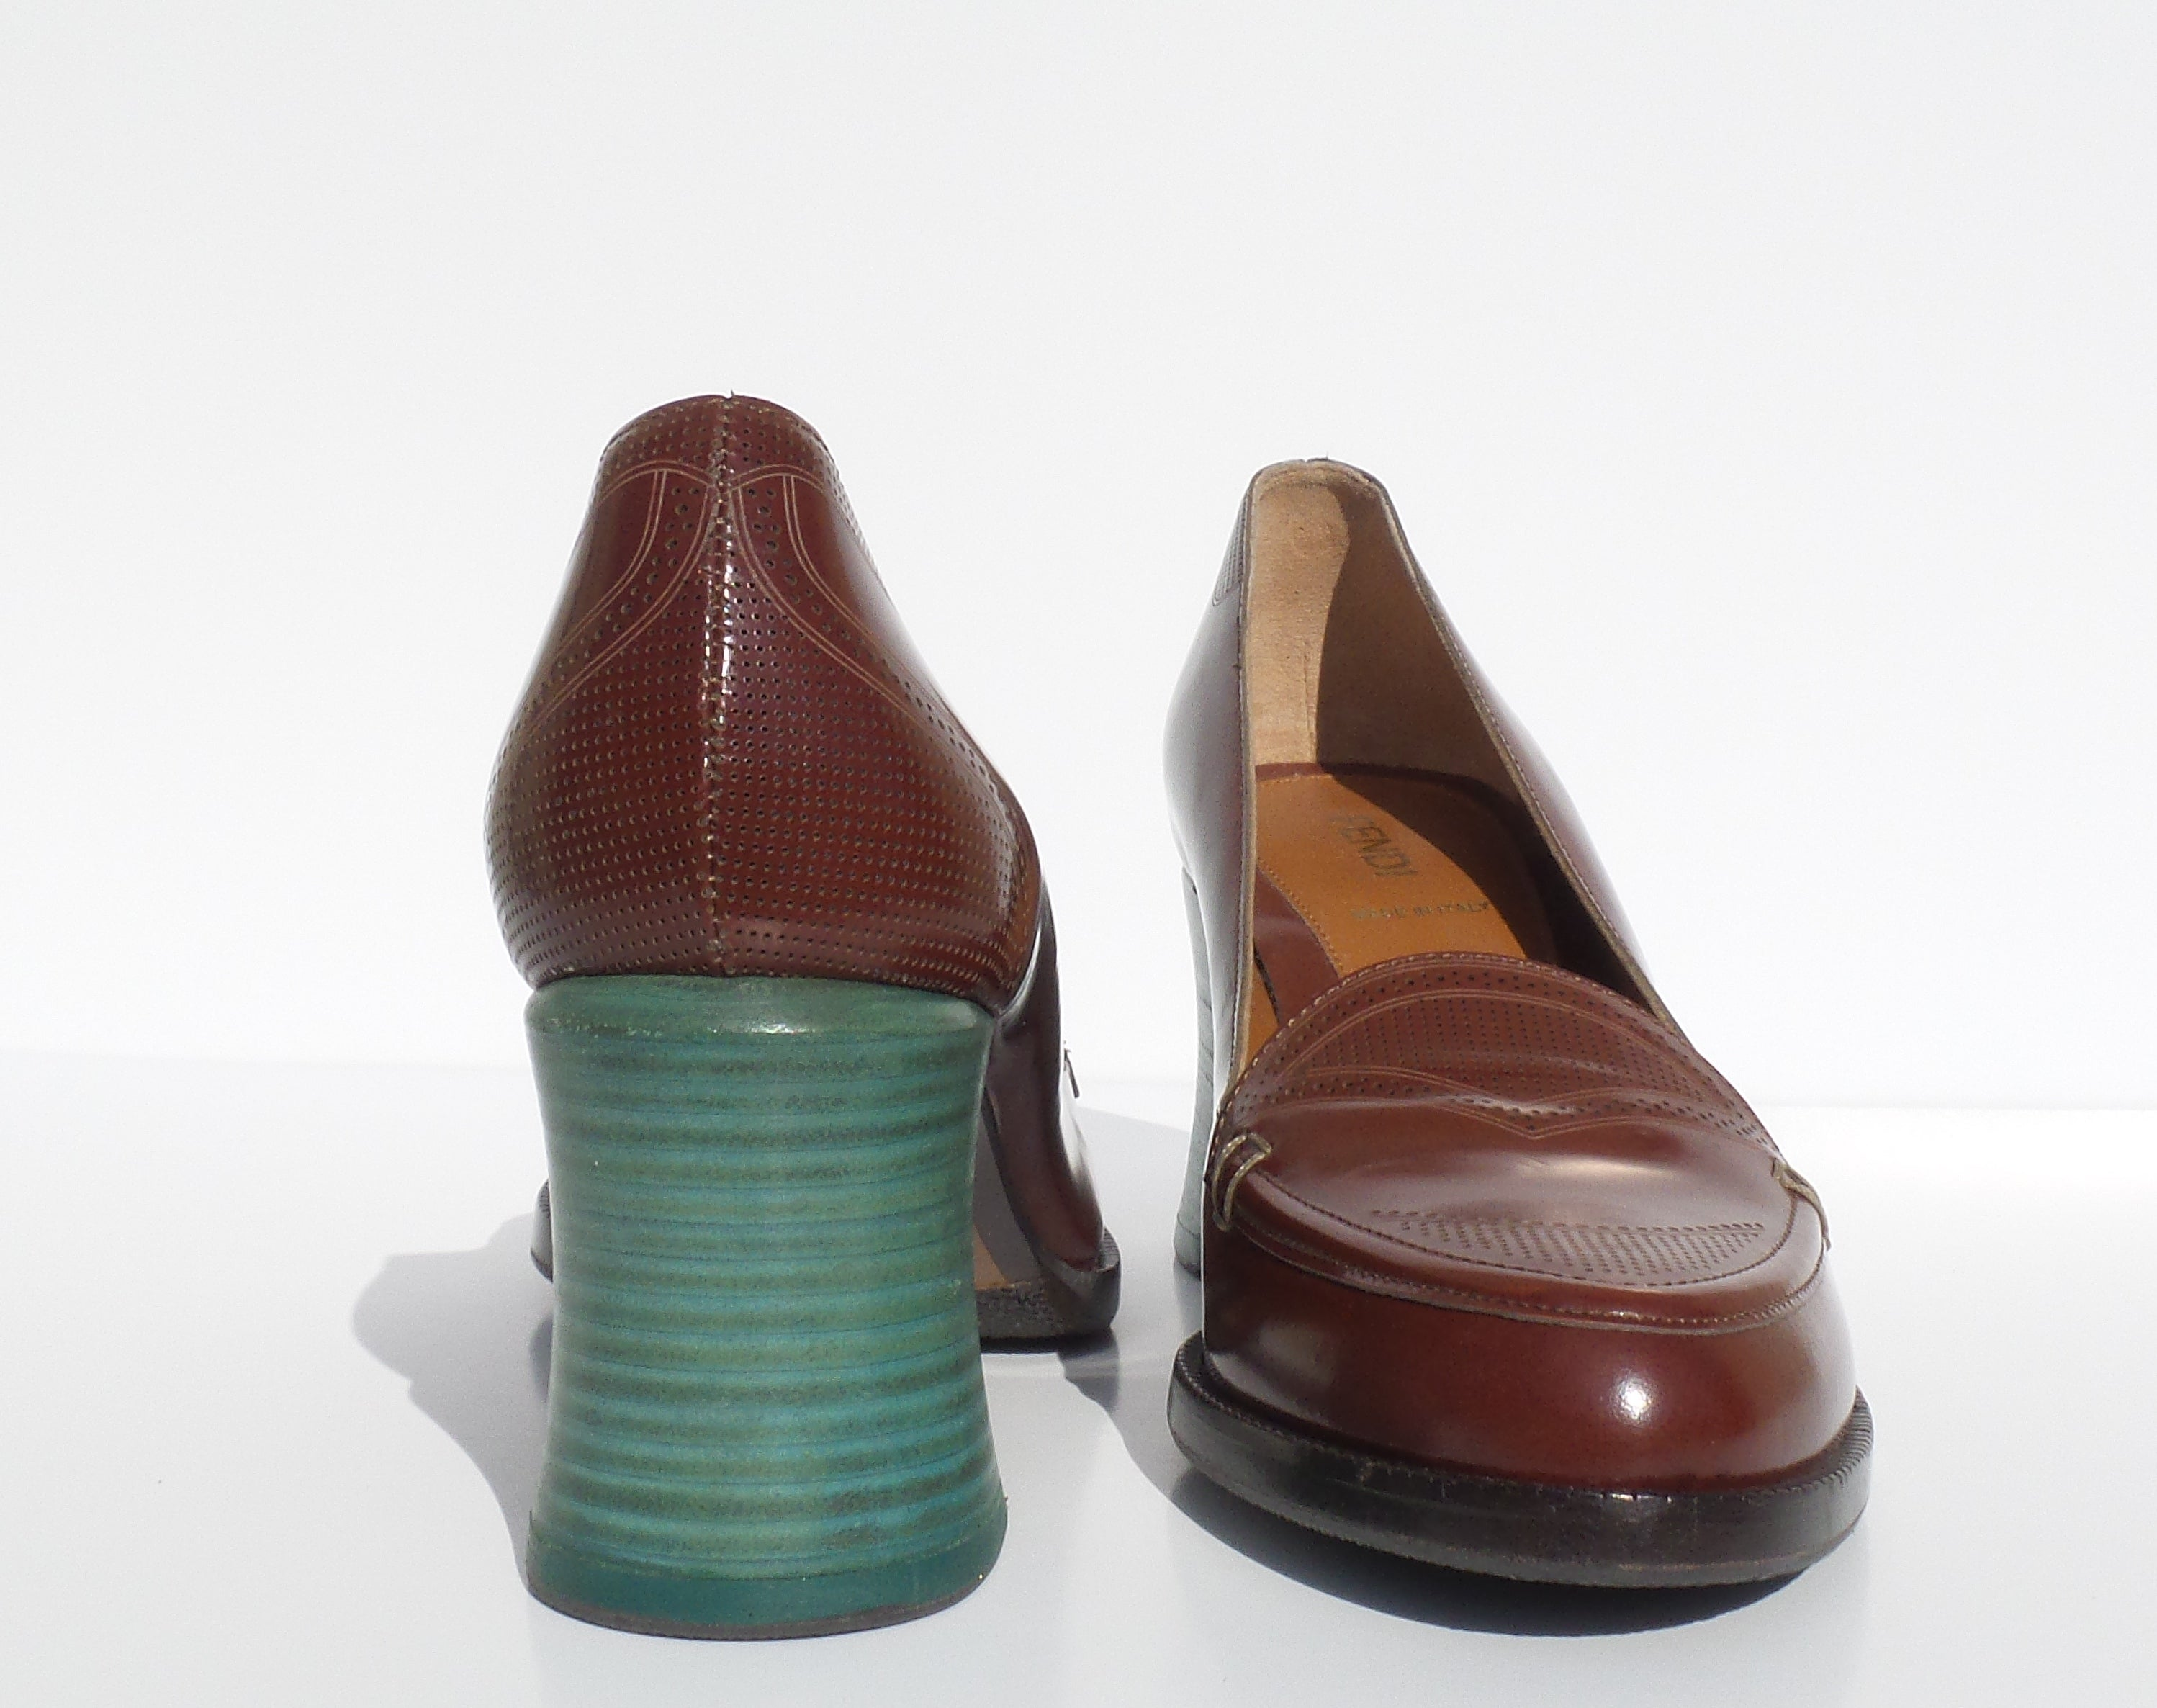 'Sold' FENDI Austen Colorblock Brown Polished Leather Teal Green Heel Loafer Pumps 39